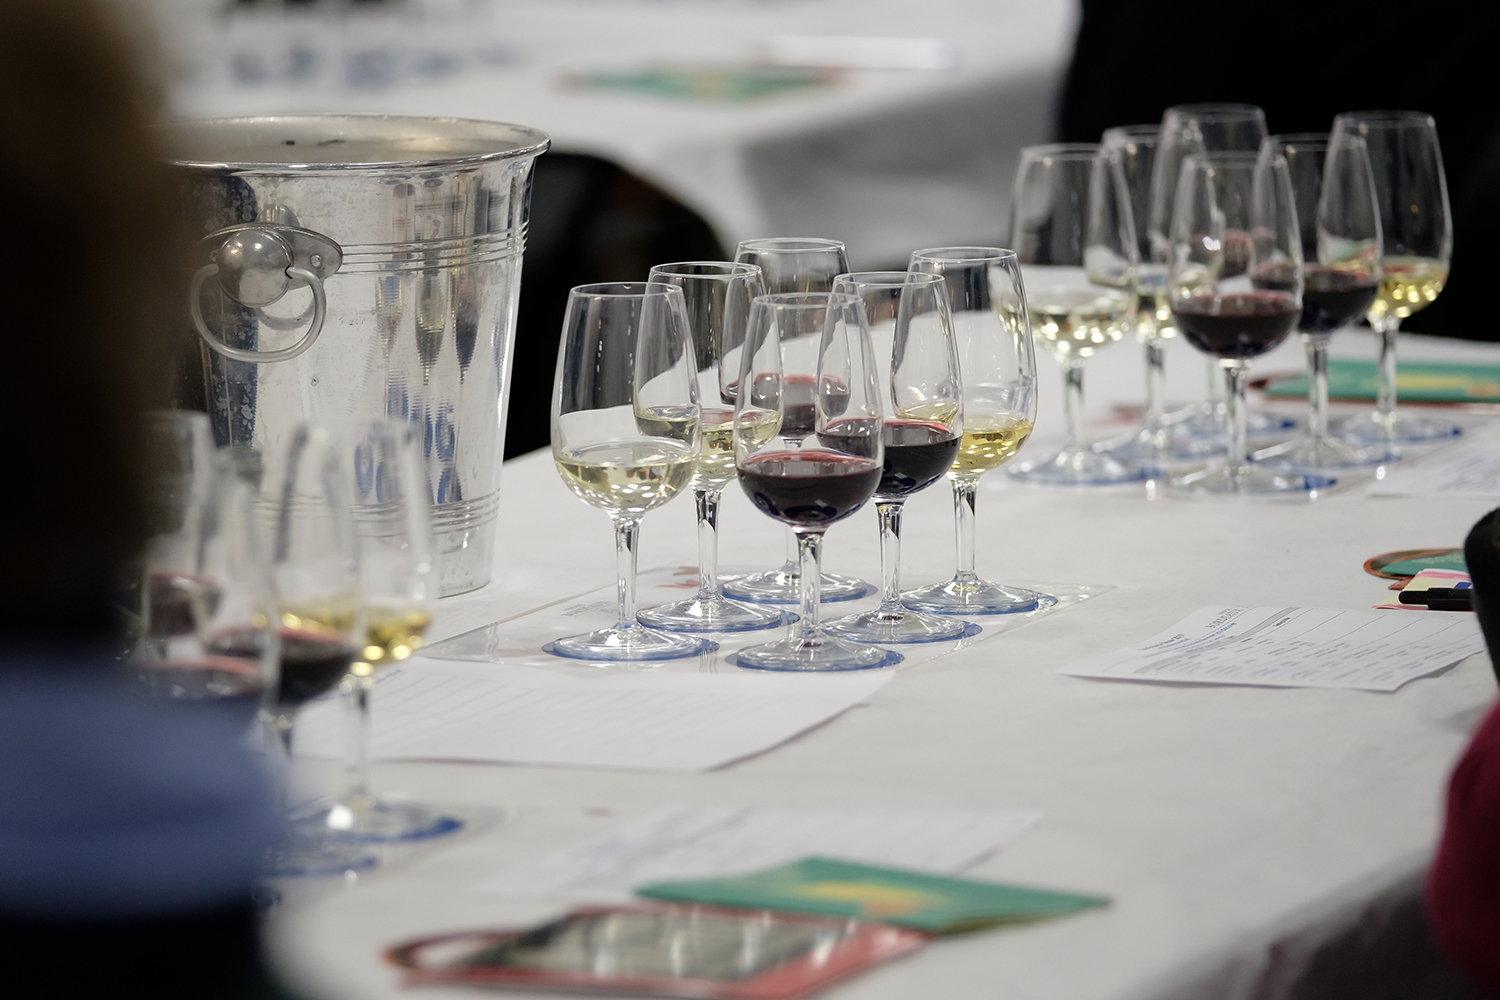 Taste wine with the experts